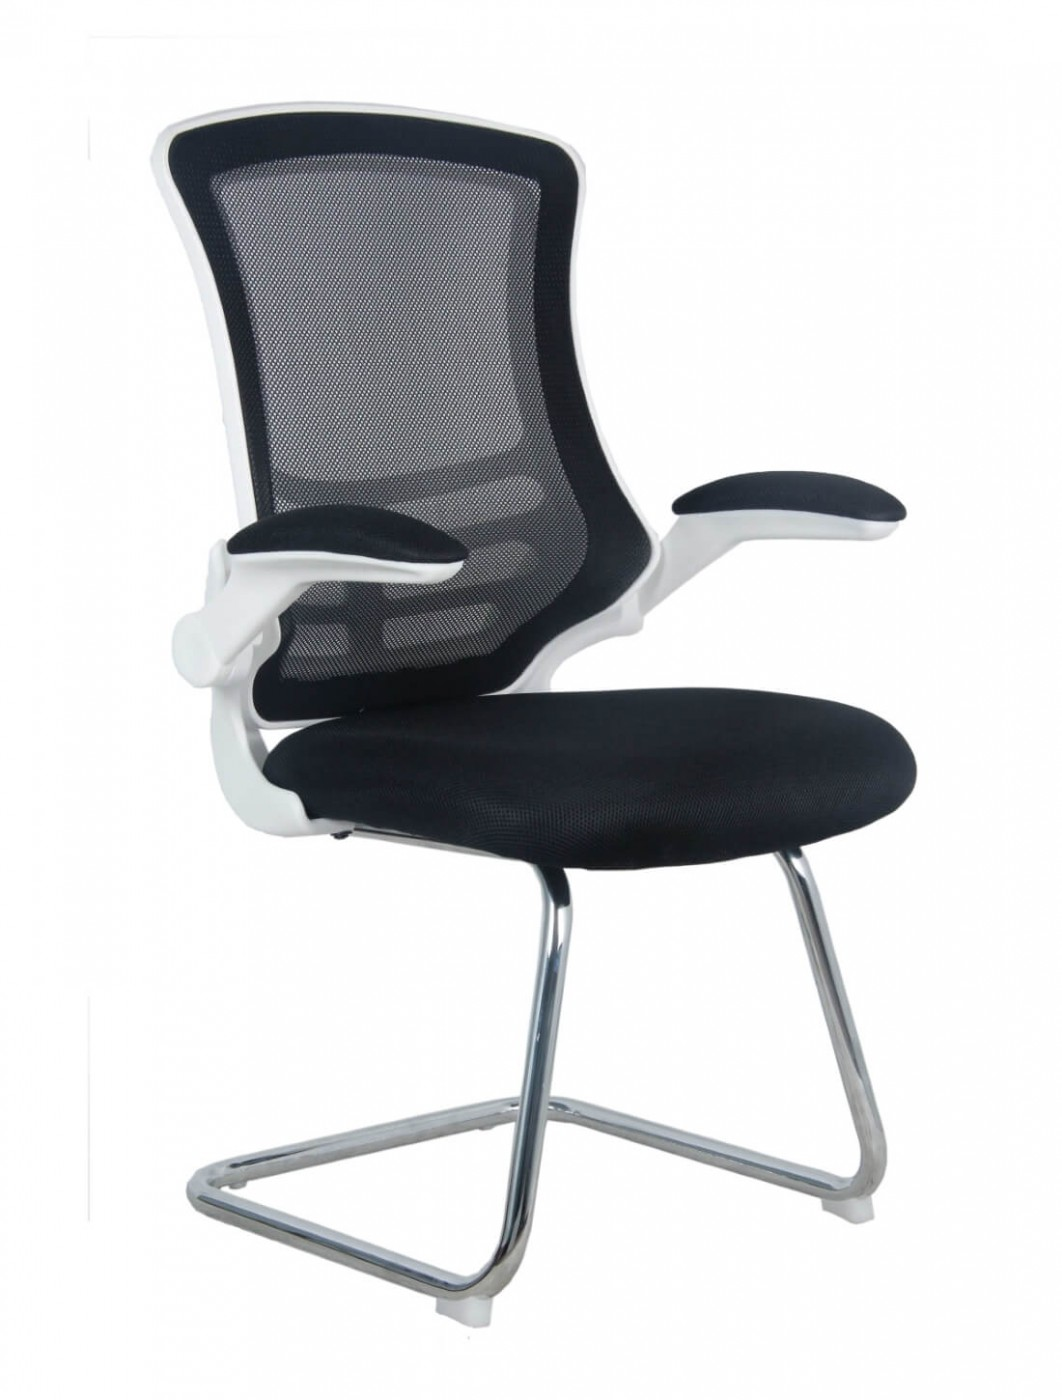 wh gunlocke chair cool chairs for teenage rooms office eliza tinsley luna black visitors